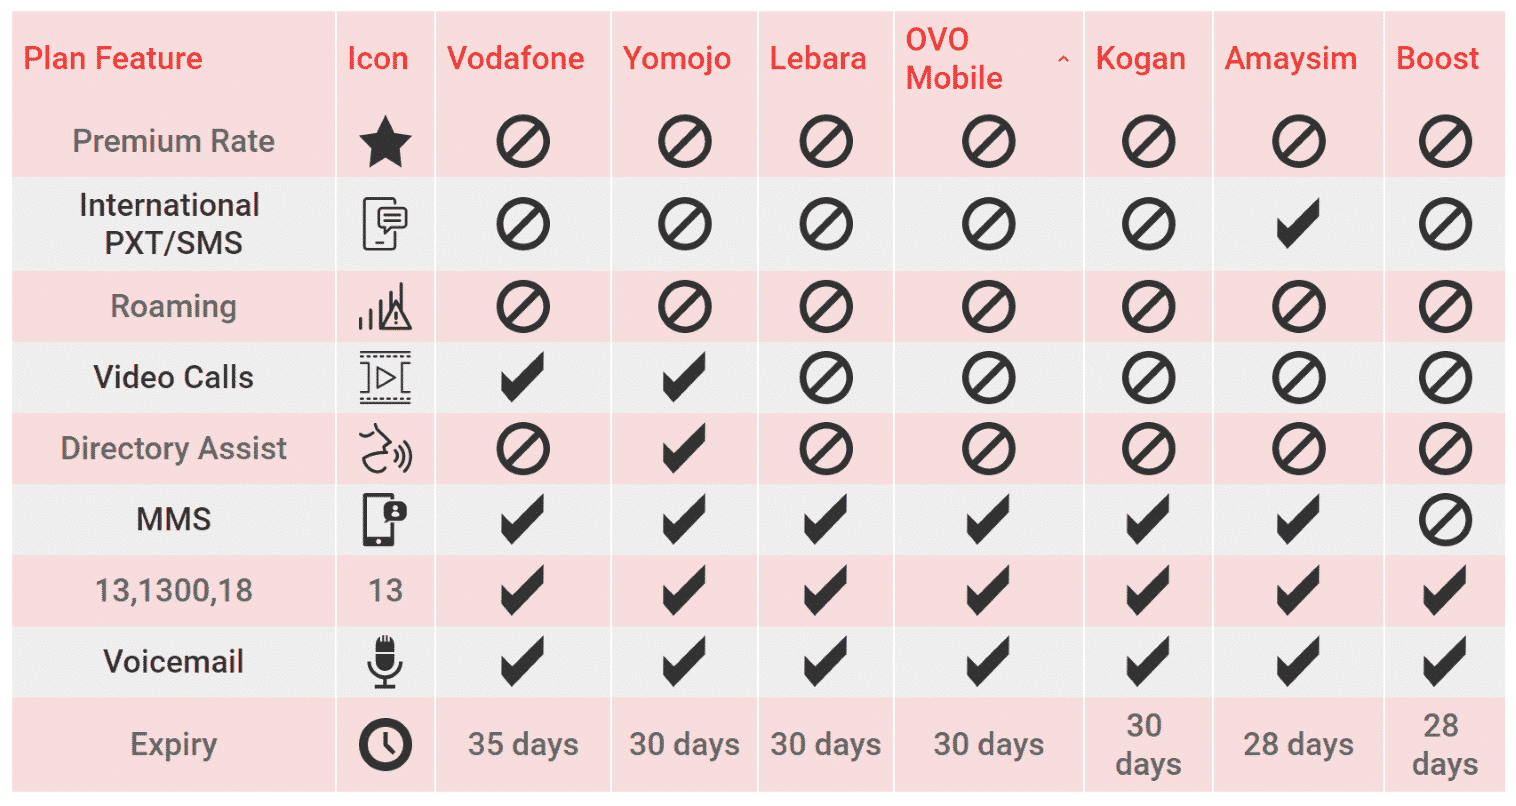 Use this table to compare the key features of Australian prepaid plans